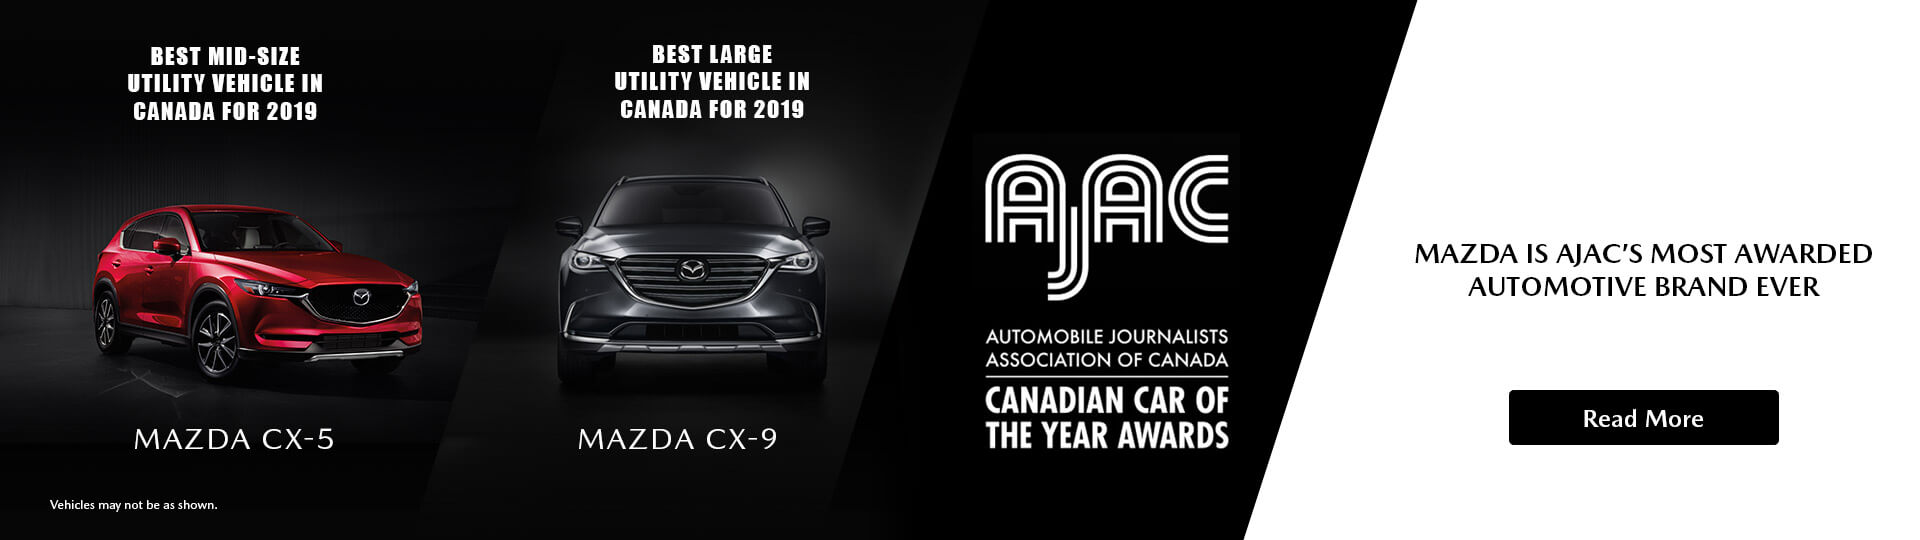 The Mazda CX-5 and Mazda CX-9 defended their titles by winning AJAC's Best in Category Awards for yet another year.